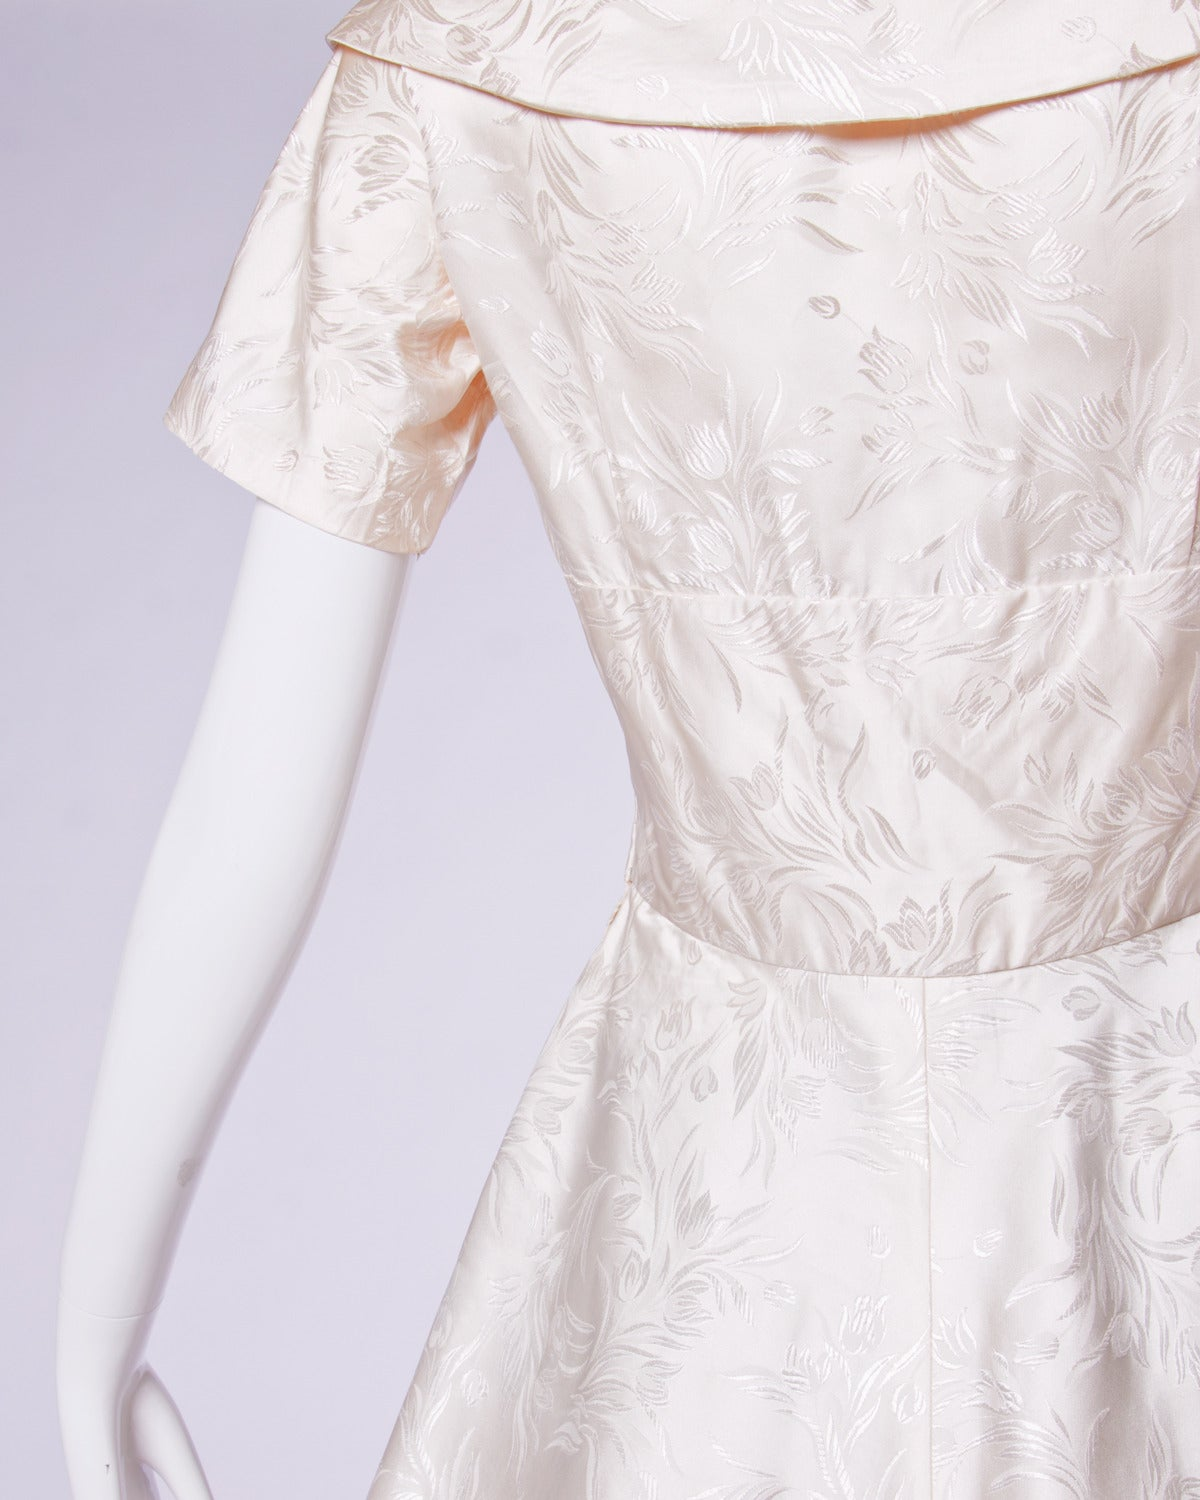 Vintage 1950s 50s Silk Satin Ivory Full Sweep Wedding or Party Dress For Sale 1